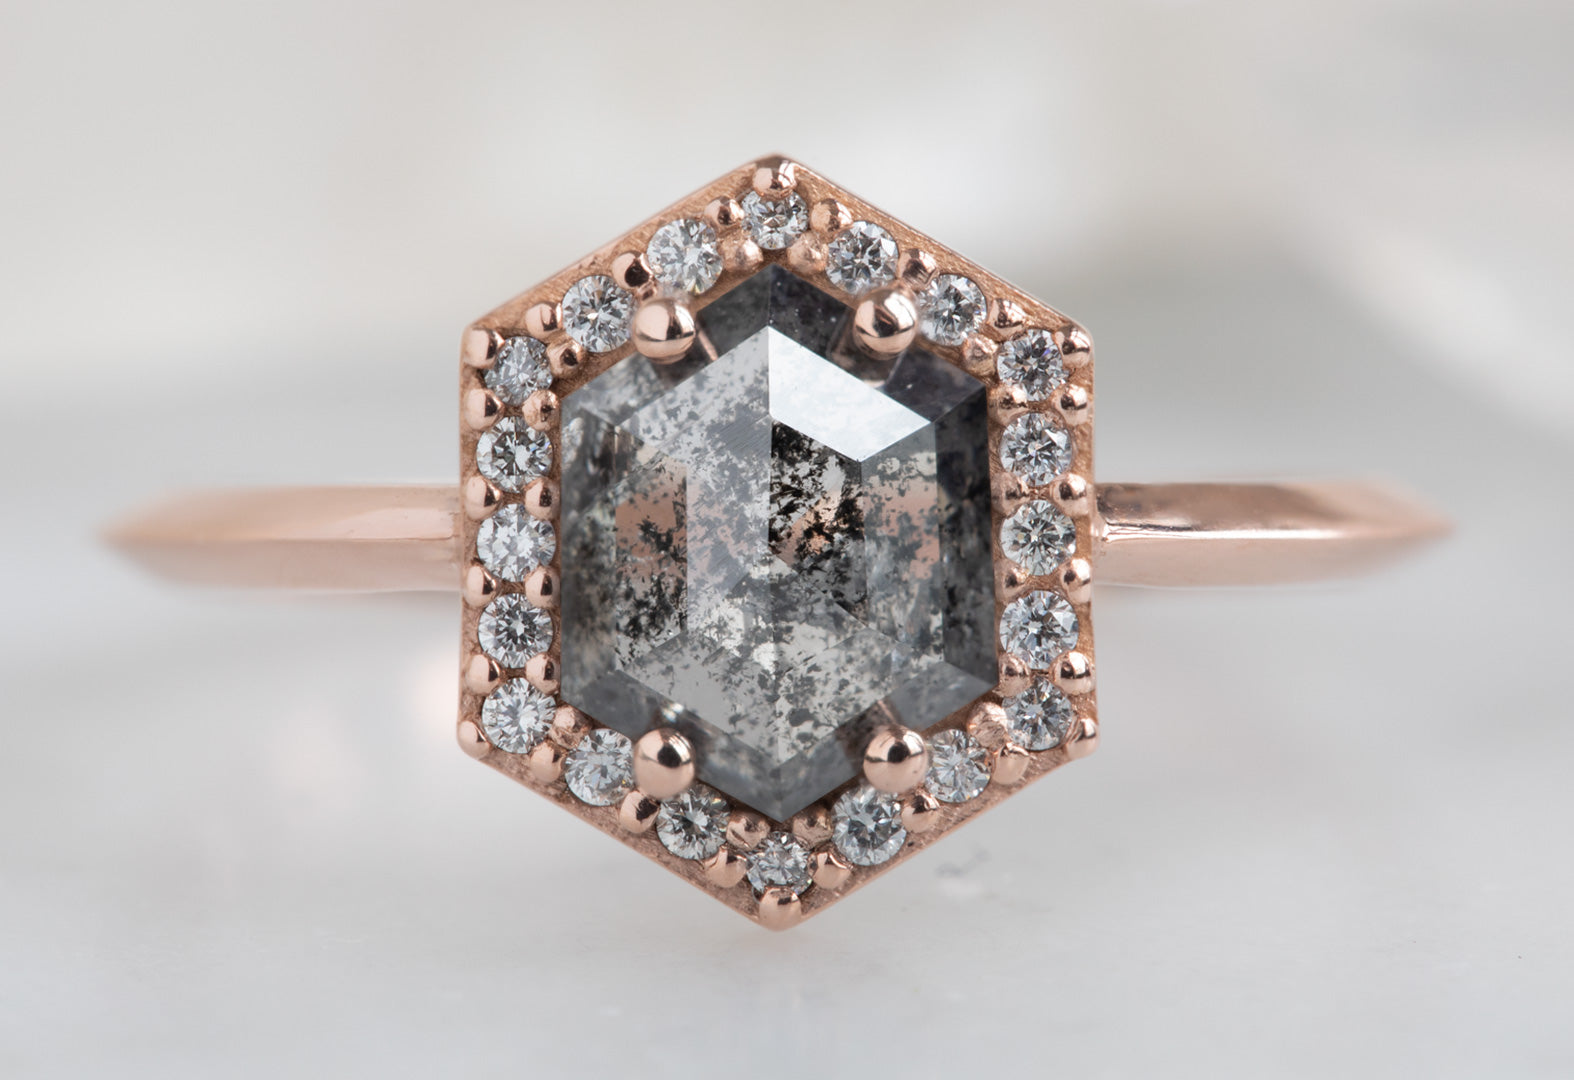 The Dahlia Ring with a Black Hexagon-Cut Diamond